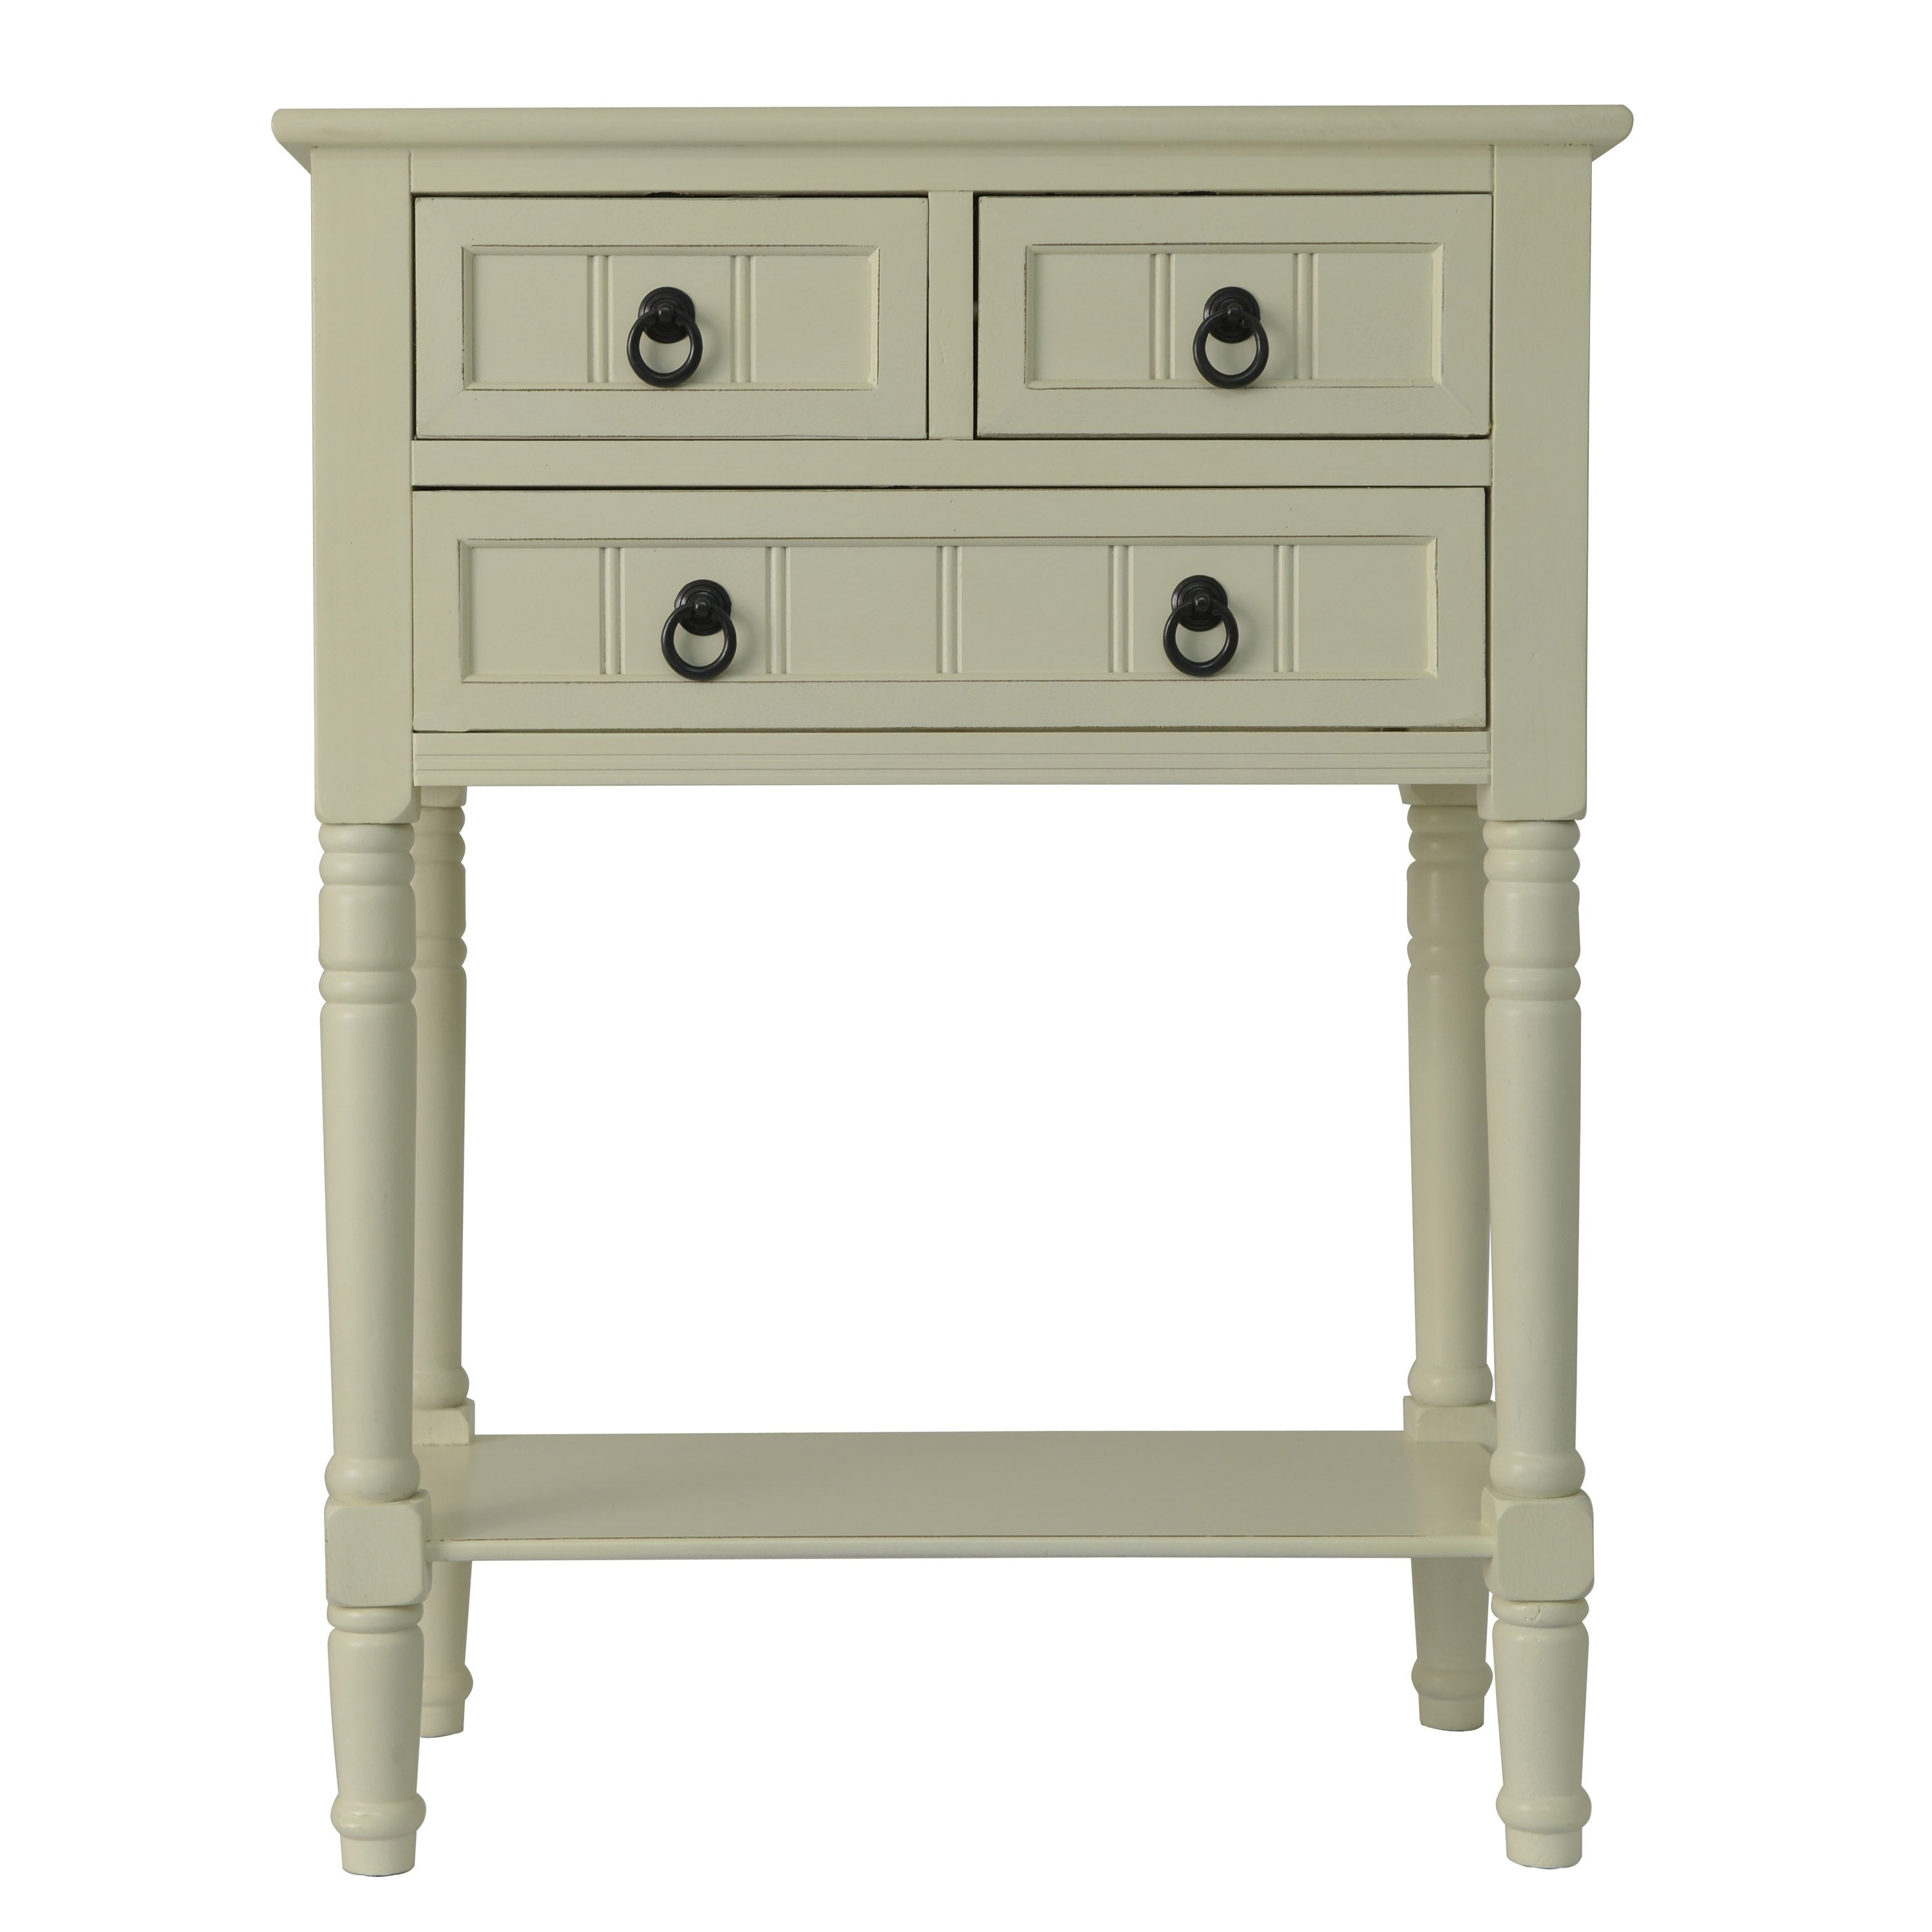 Buy entryway table online at overstock our best living room furniture deals